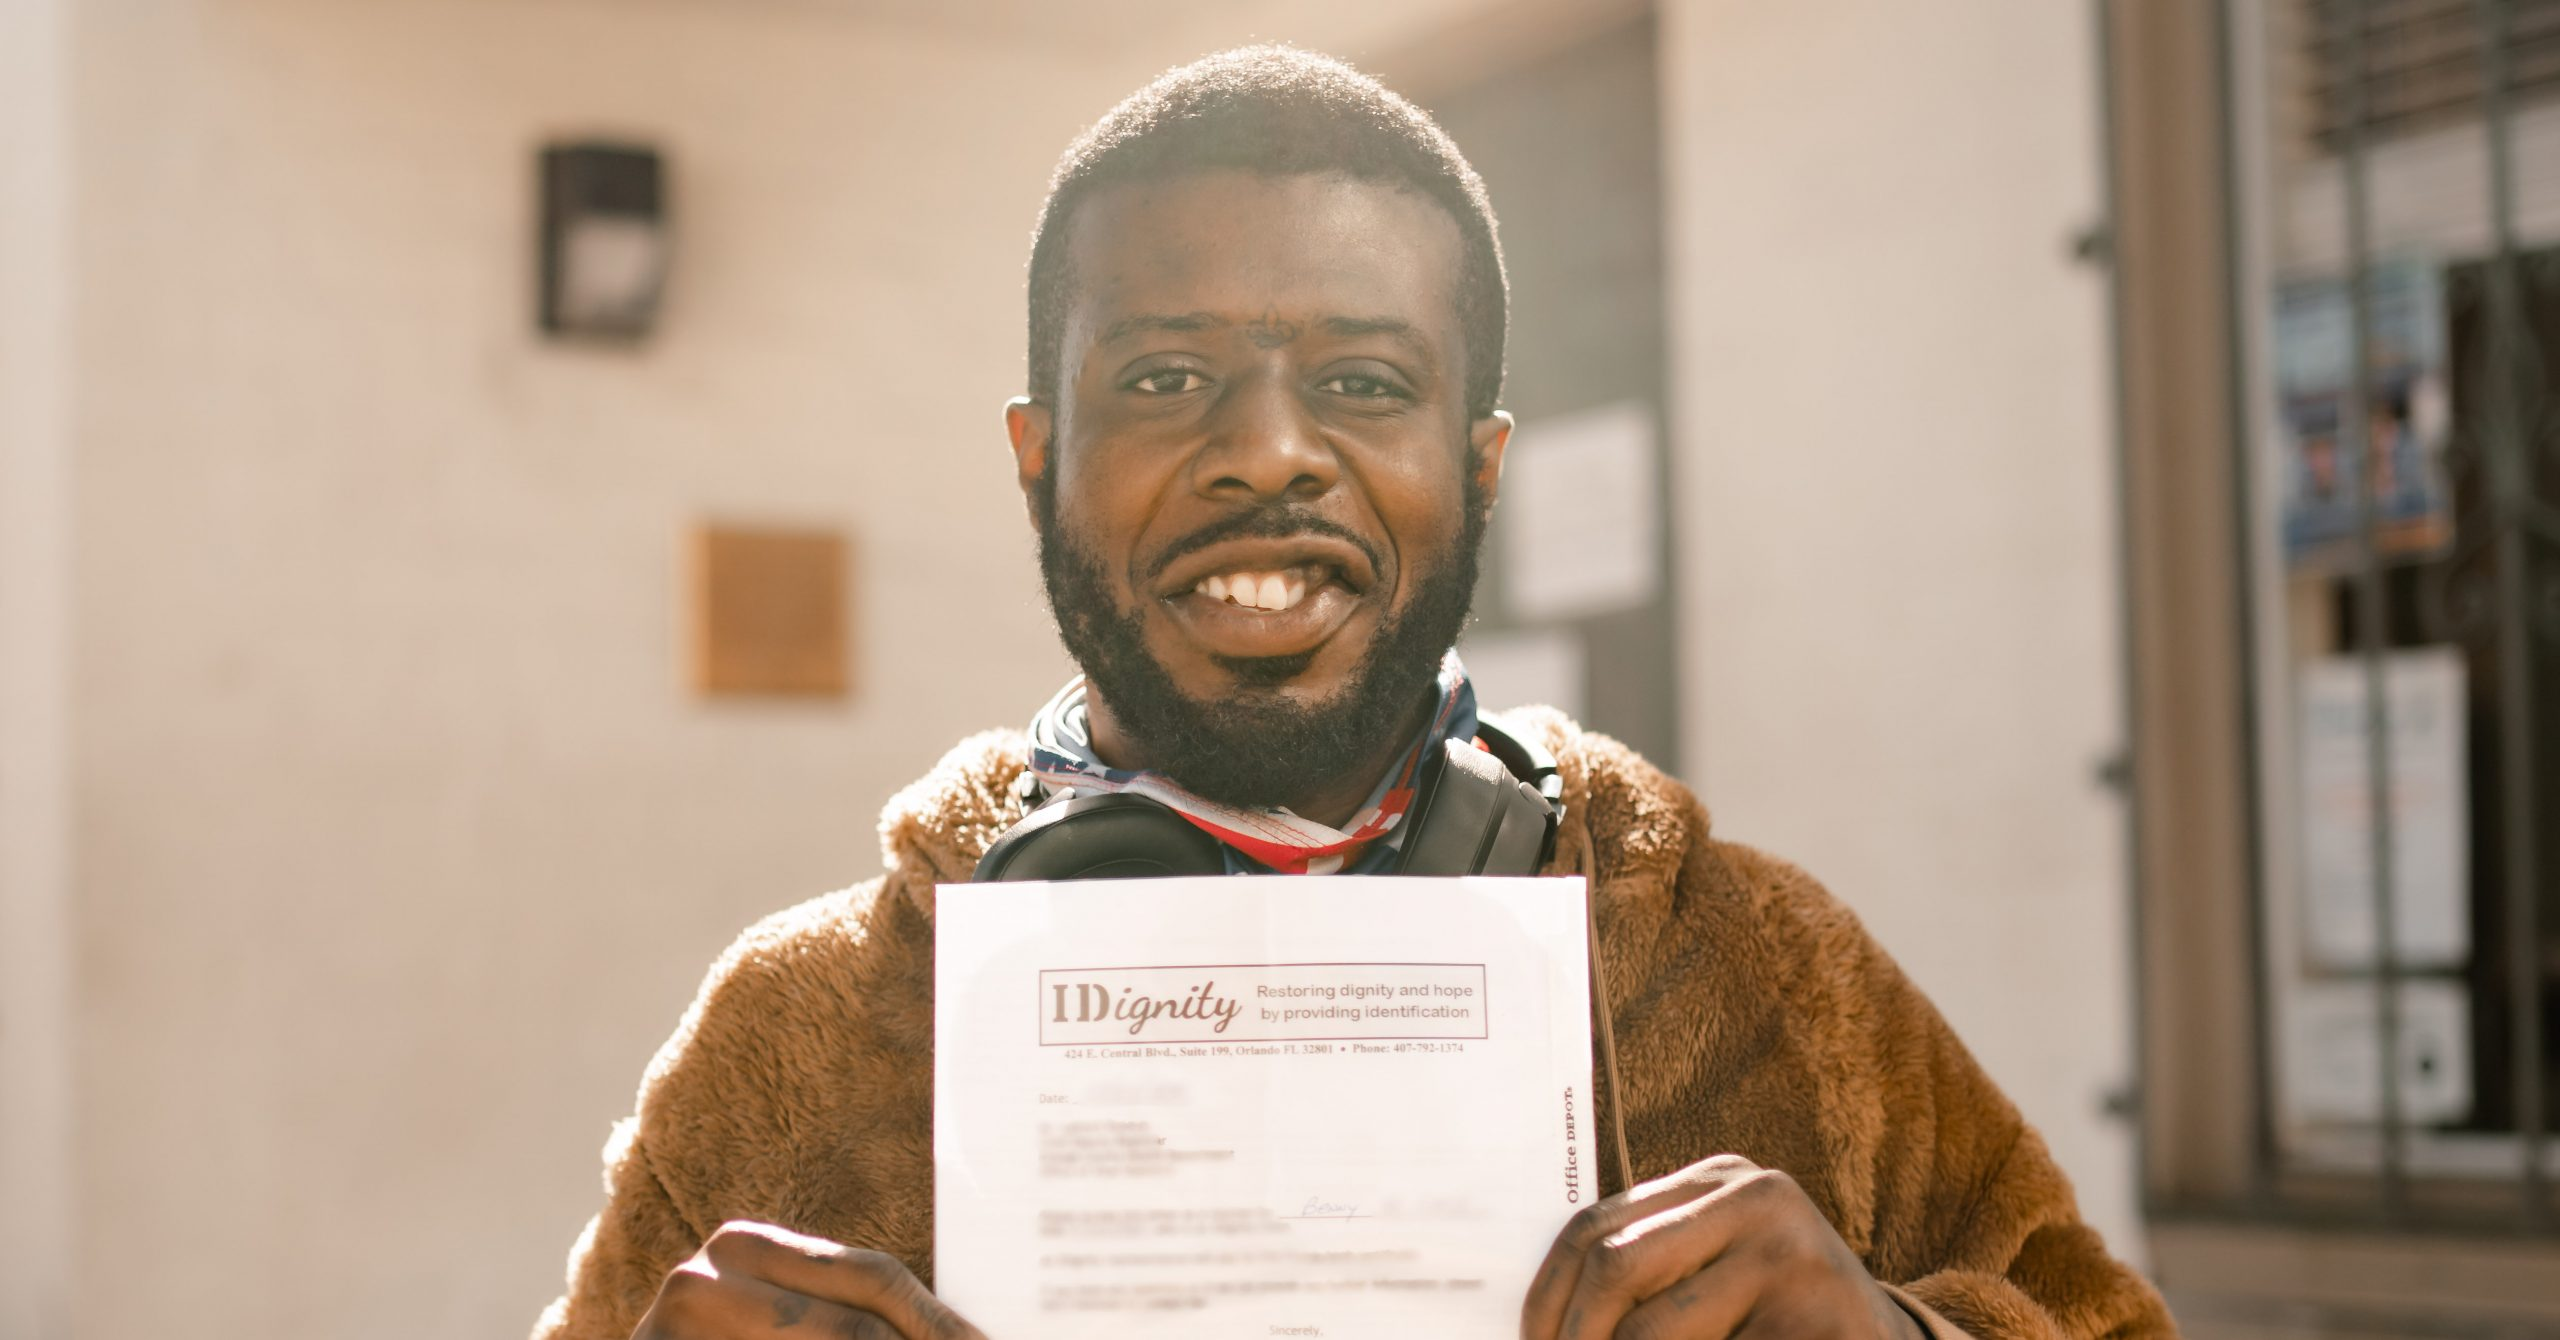 IDignity client Benny holds up the voucher that will help him get his Florida birth certificate.